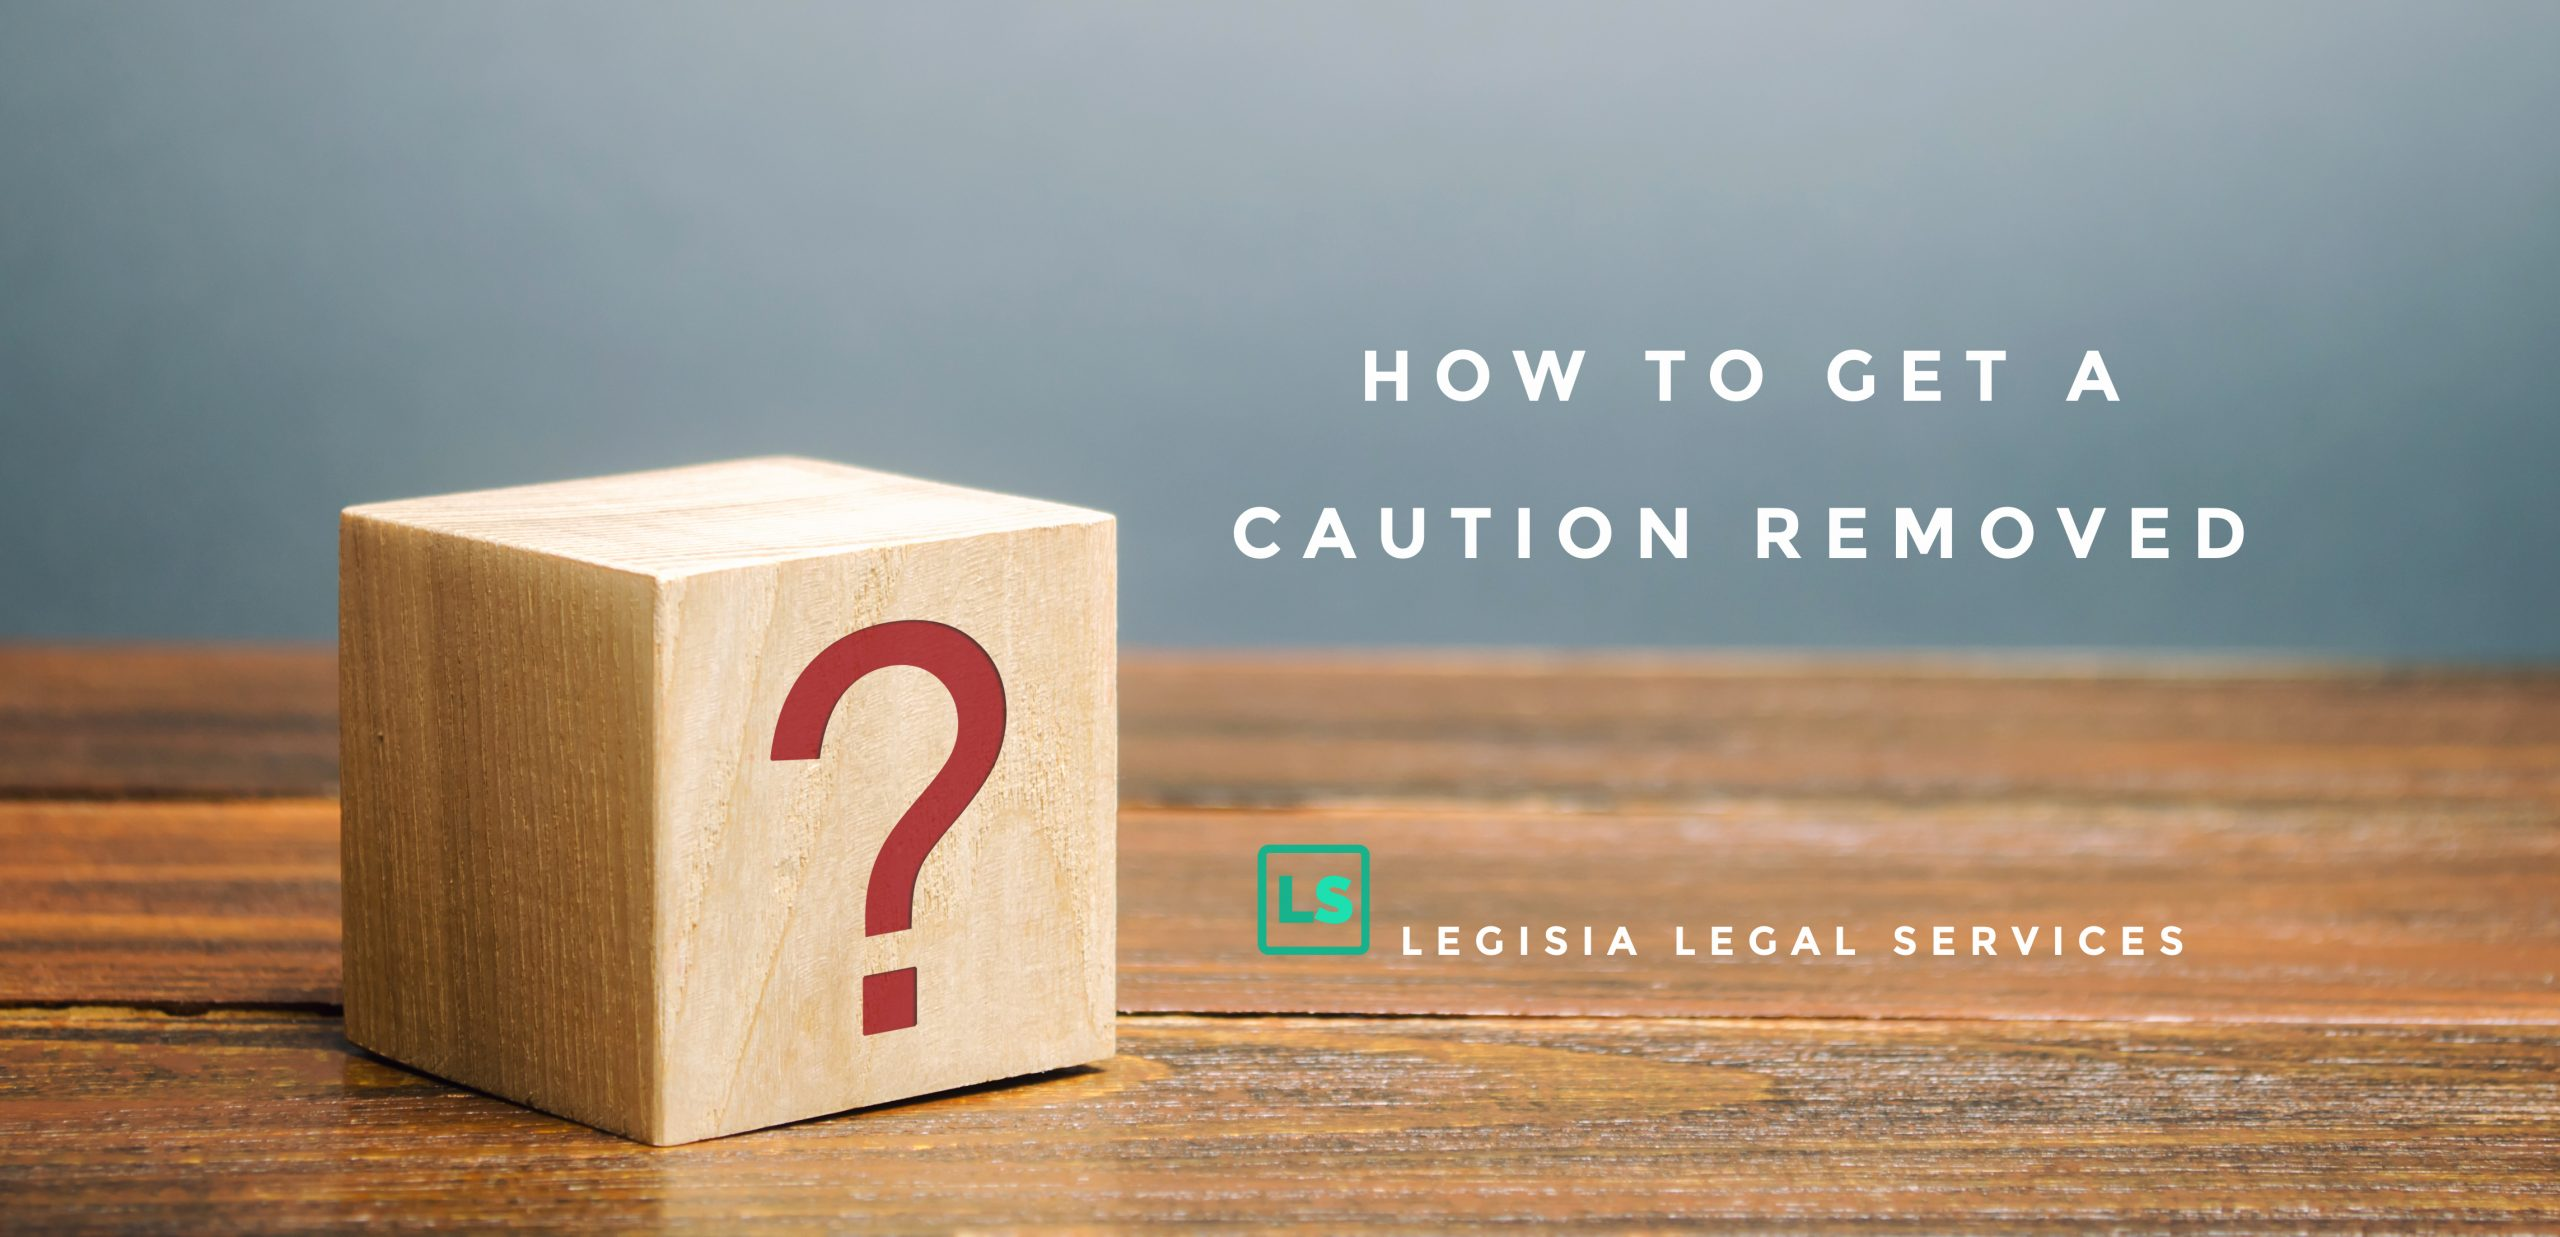 How to get a police caution removed